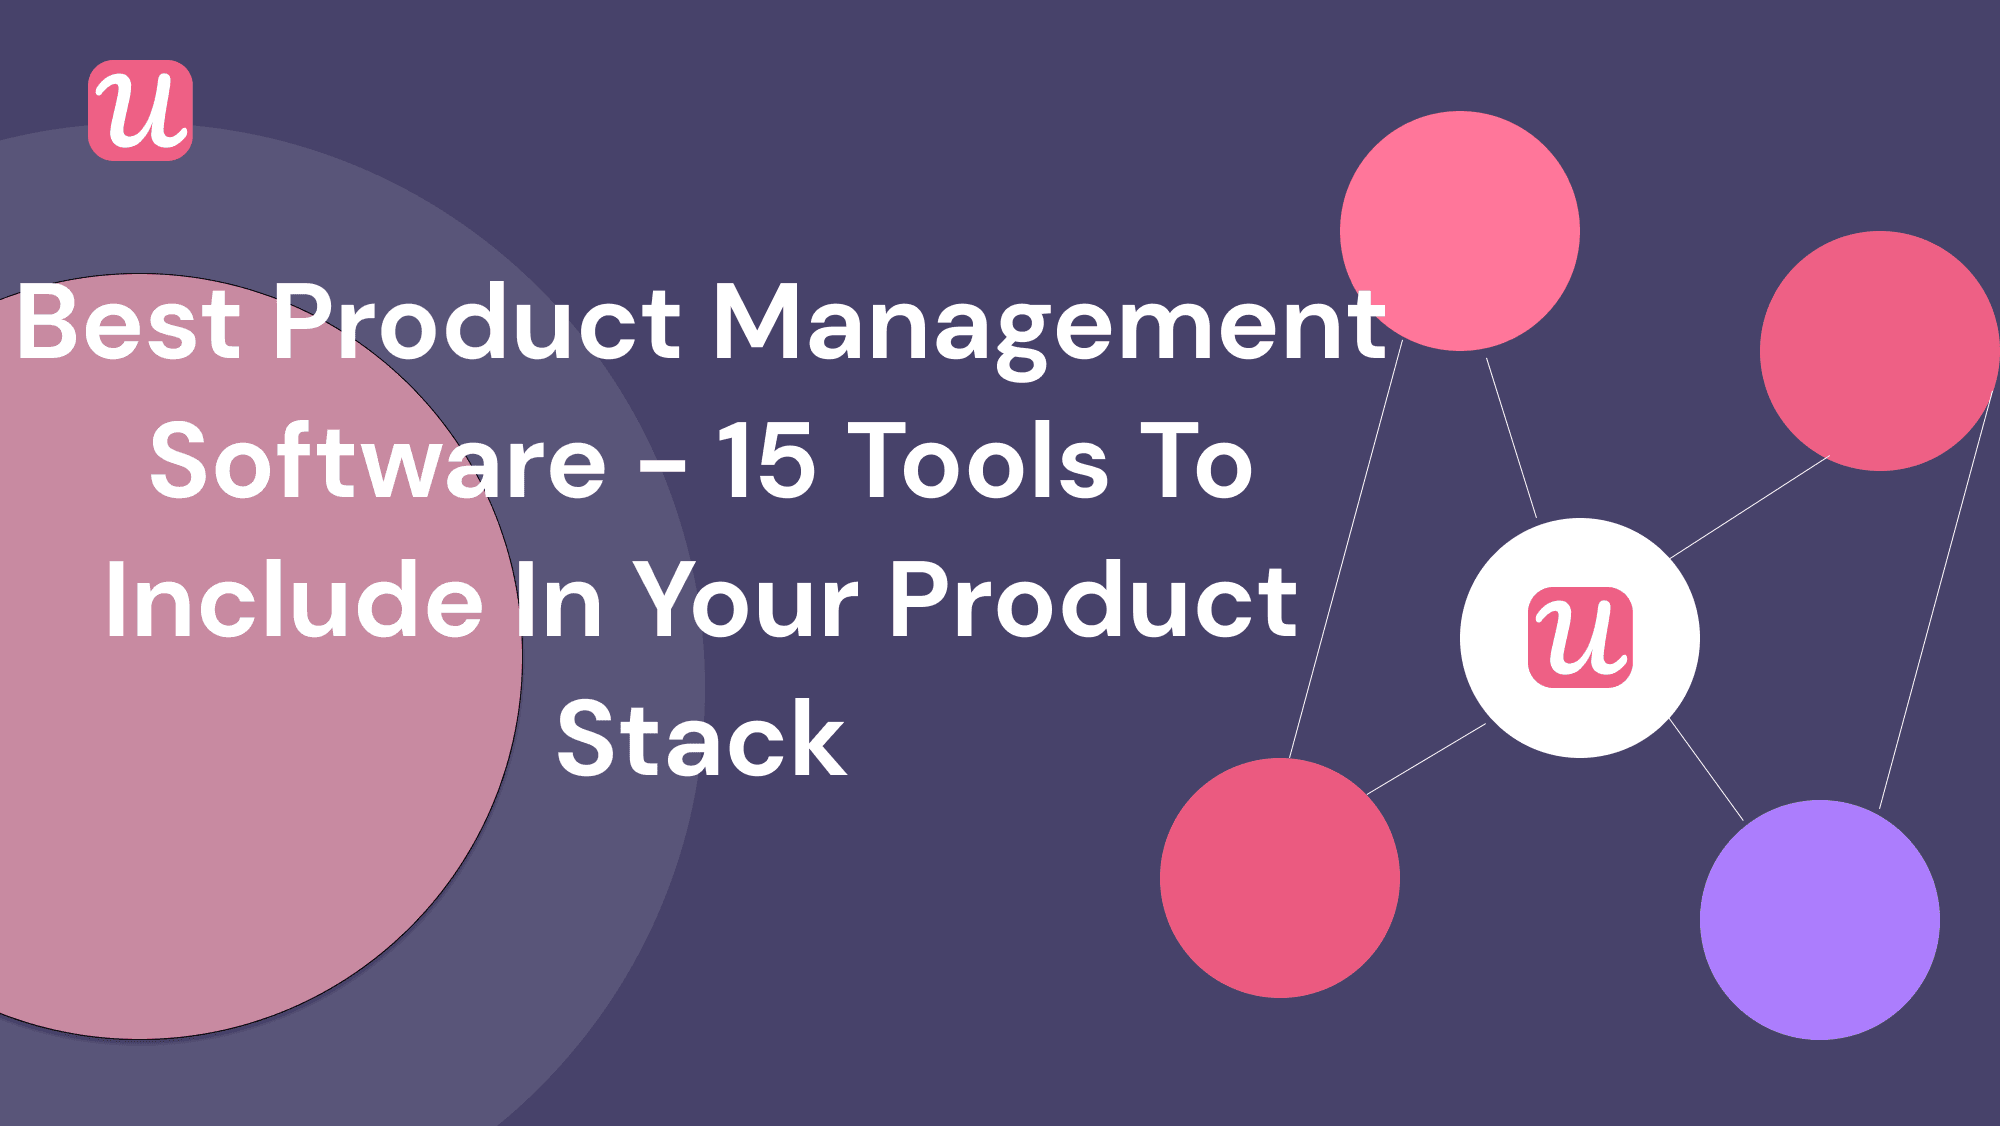 The 15 Best Product Management Software   To Include In Your Product Stack